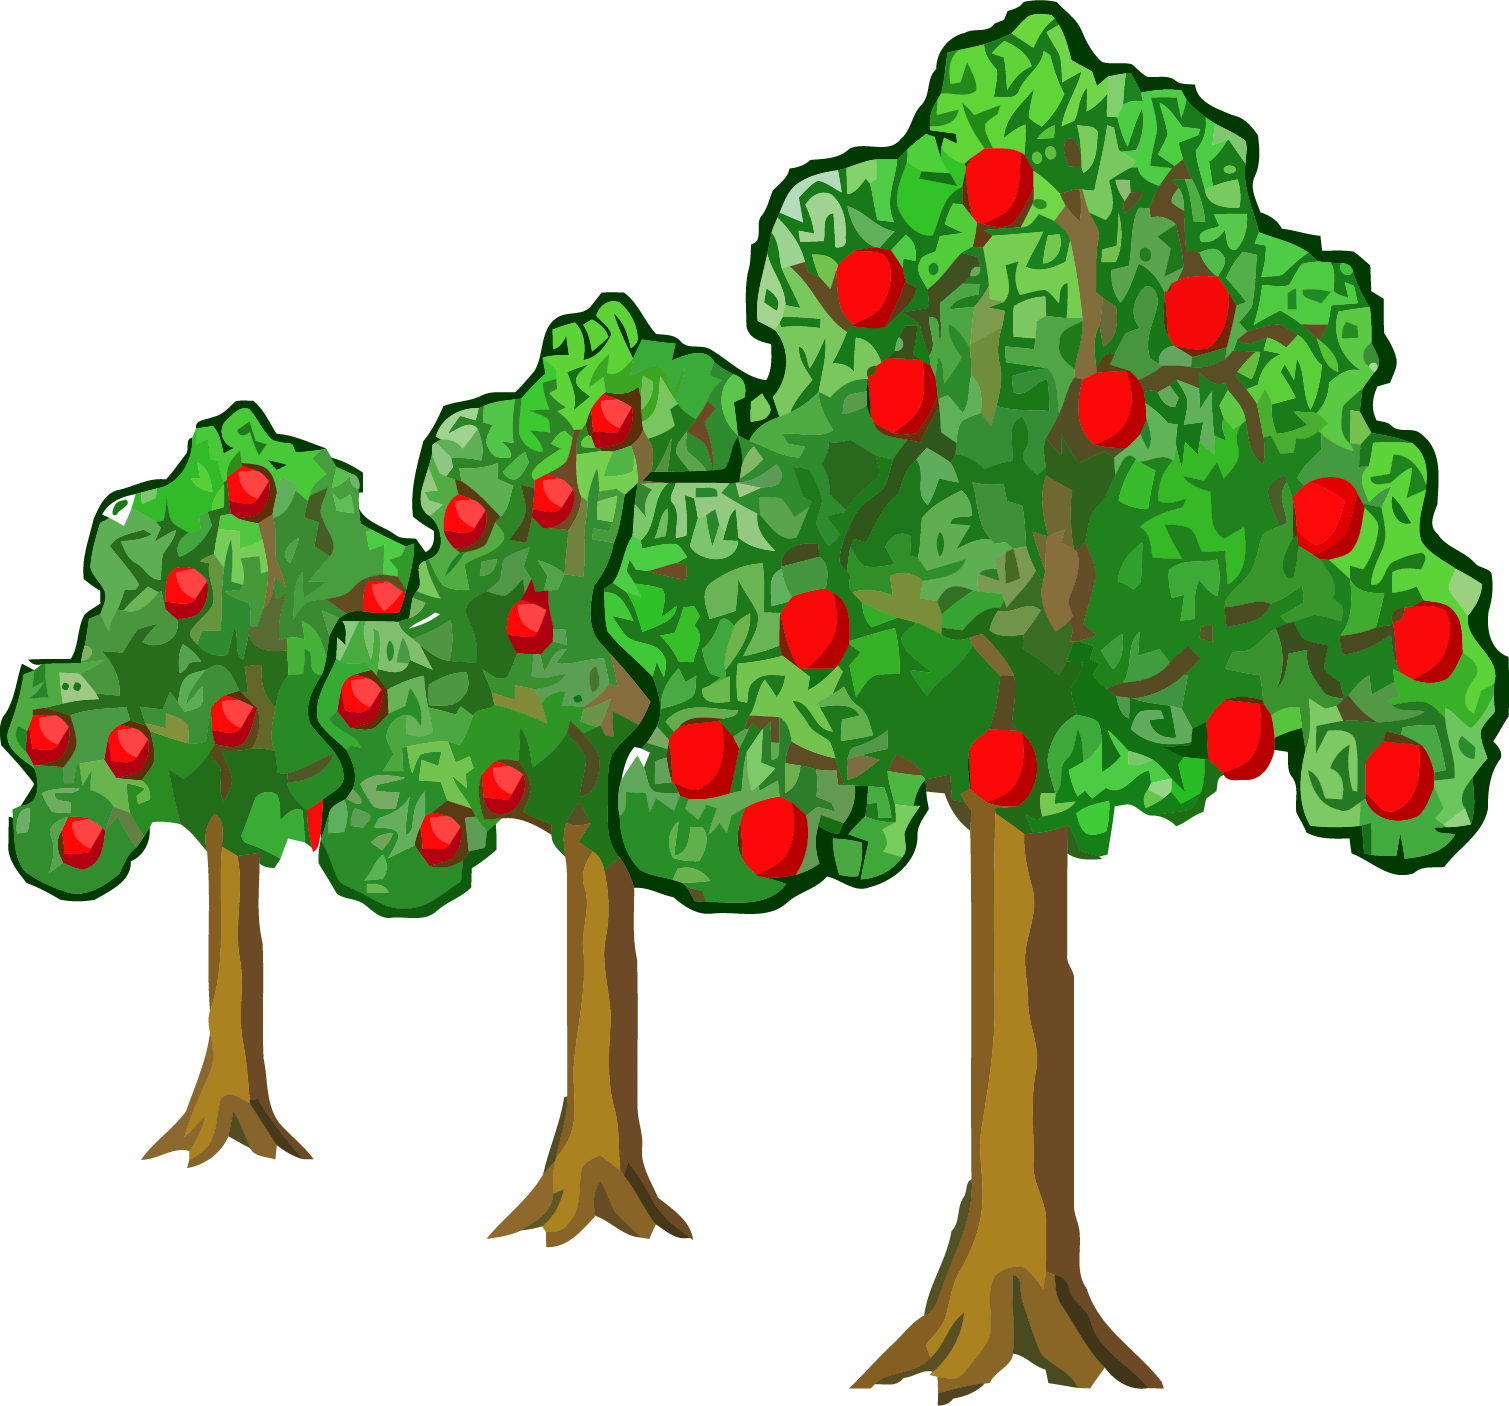 Apple tree clipart images graphic black and white download Apple Tree Clipart at GetDrawings.com | Free for personal use Apple ... graphic black and white download